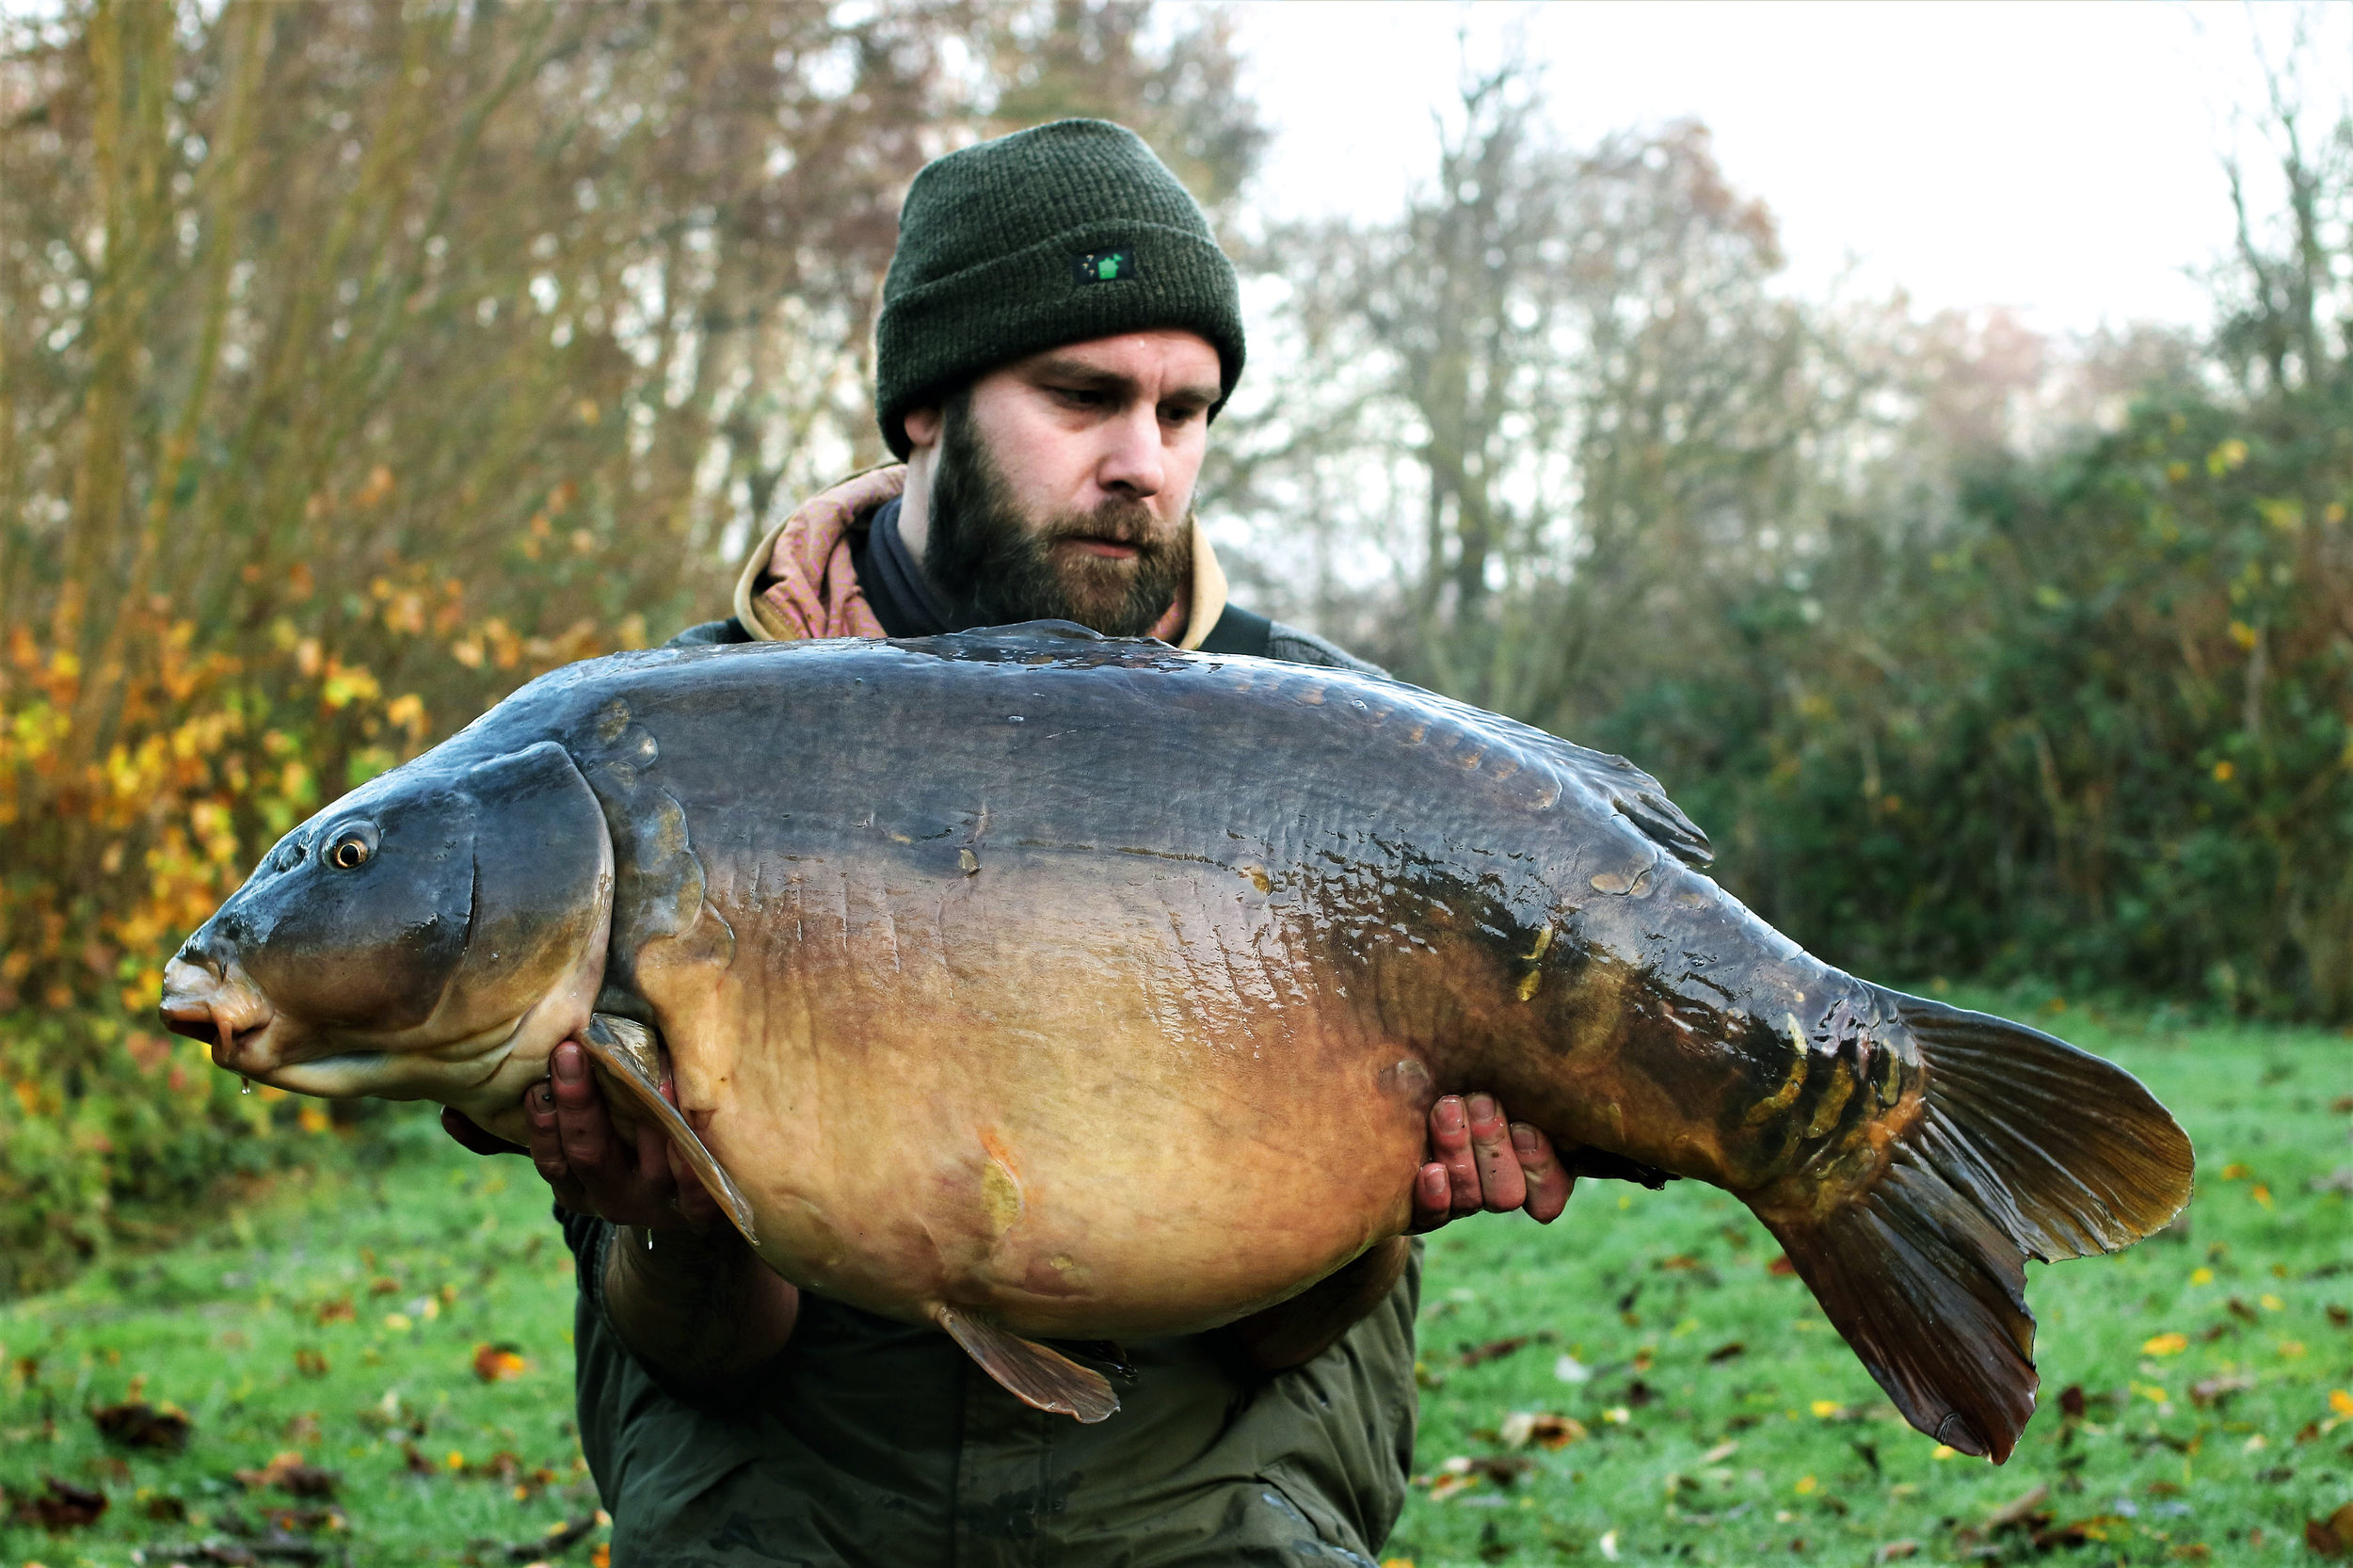 The biggest fish in the lake, The Scarred Mirror, fully replenished and weighing a huge 54lb 8oz. It was a new PB for him